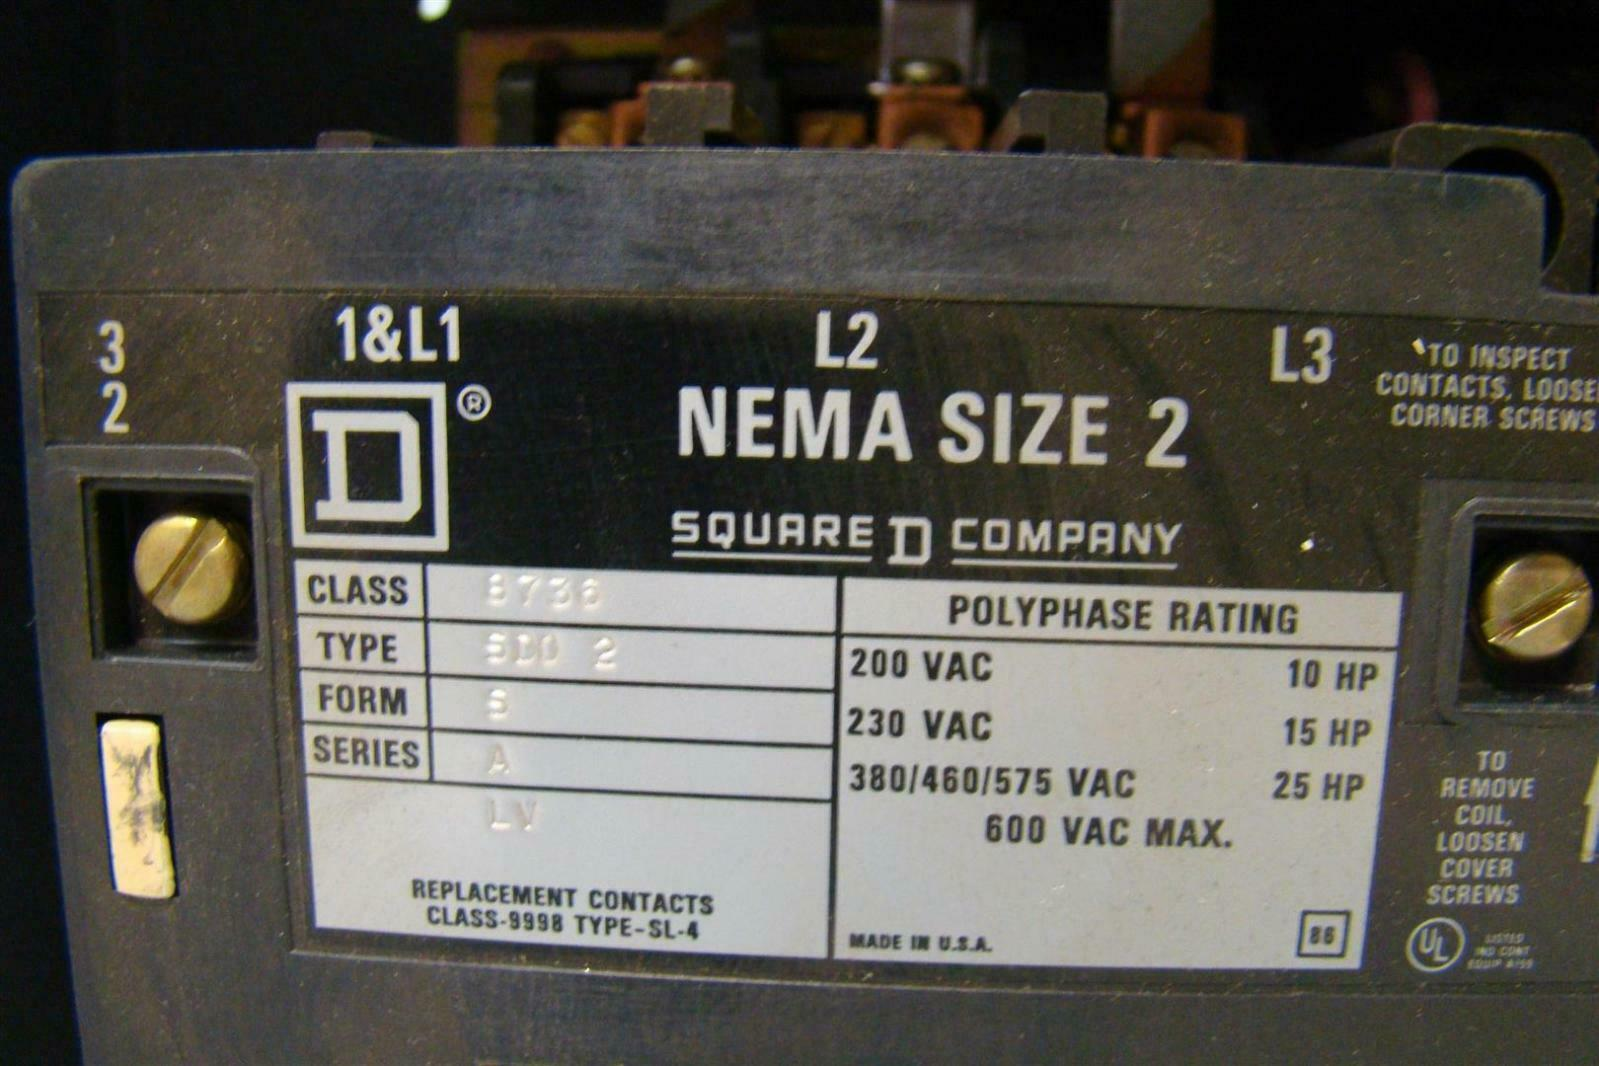 Square d overload relay nema size 2 starter 200vac 10hp for Sizing motor starters and overloads